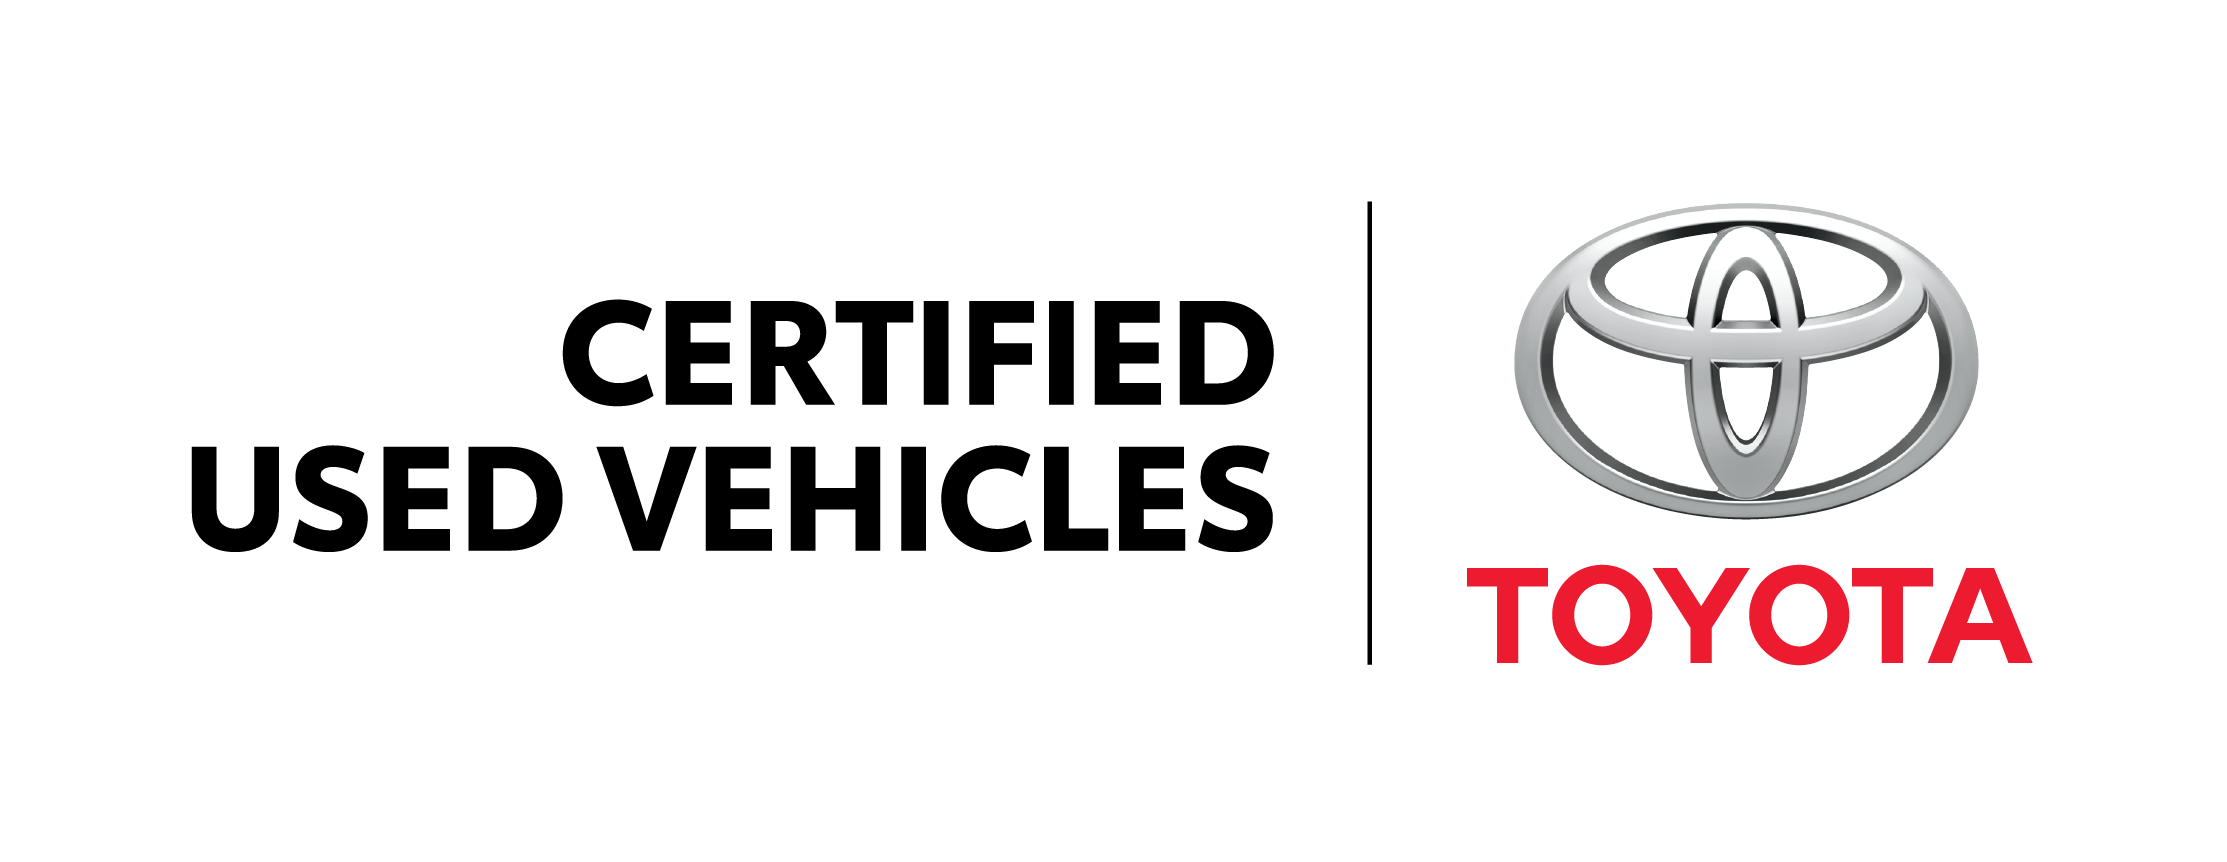 Toyota Camry Le At For Sale In Kitchener